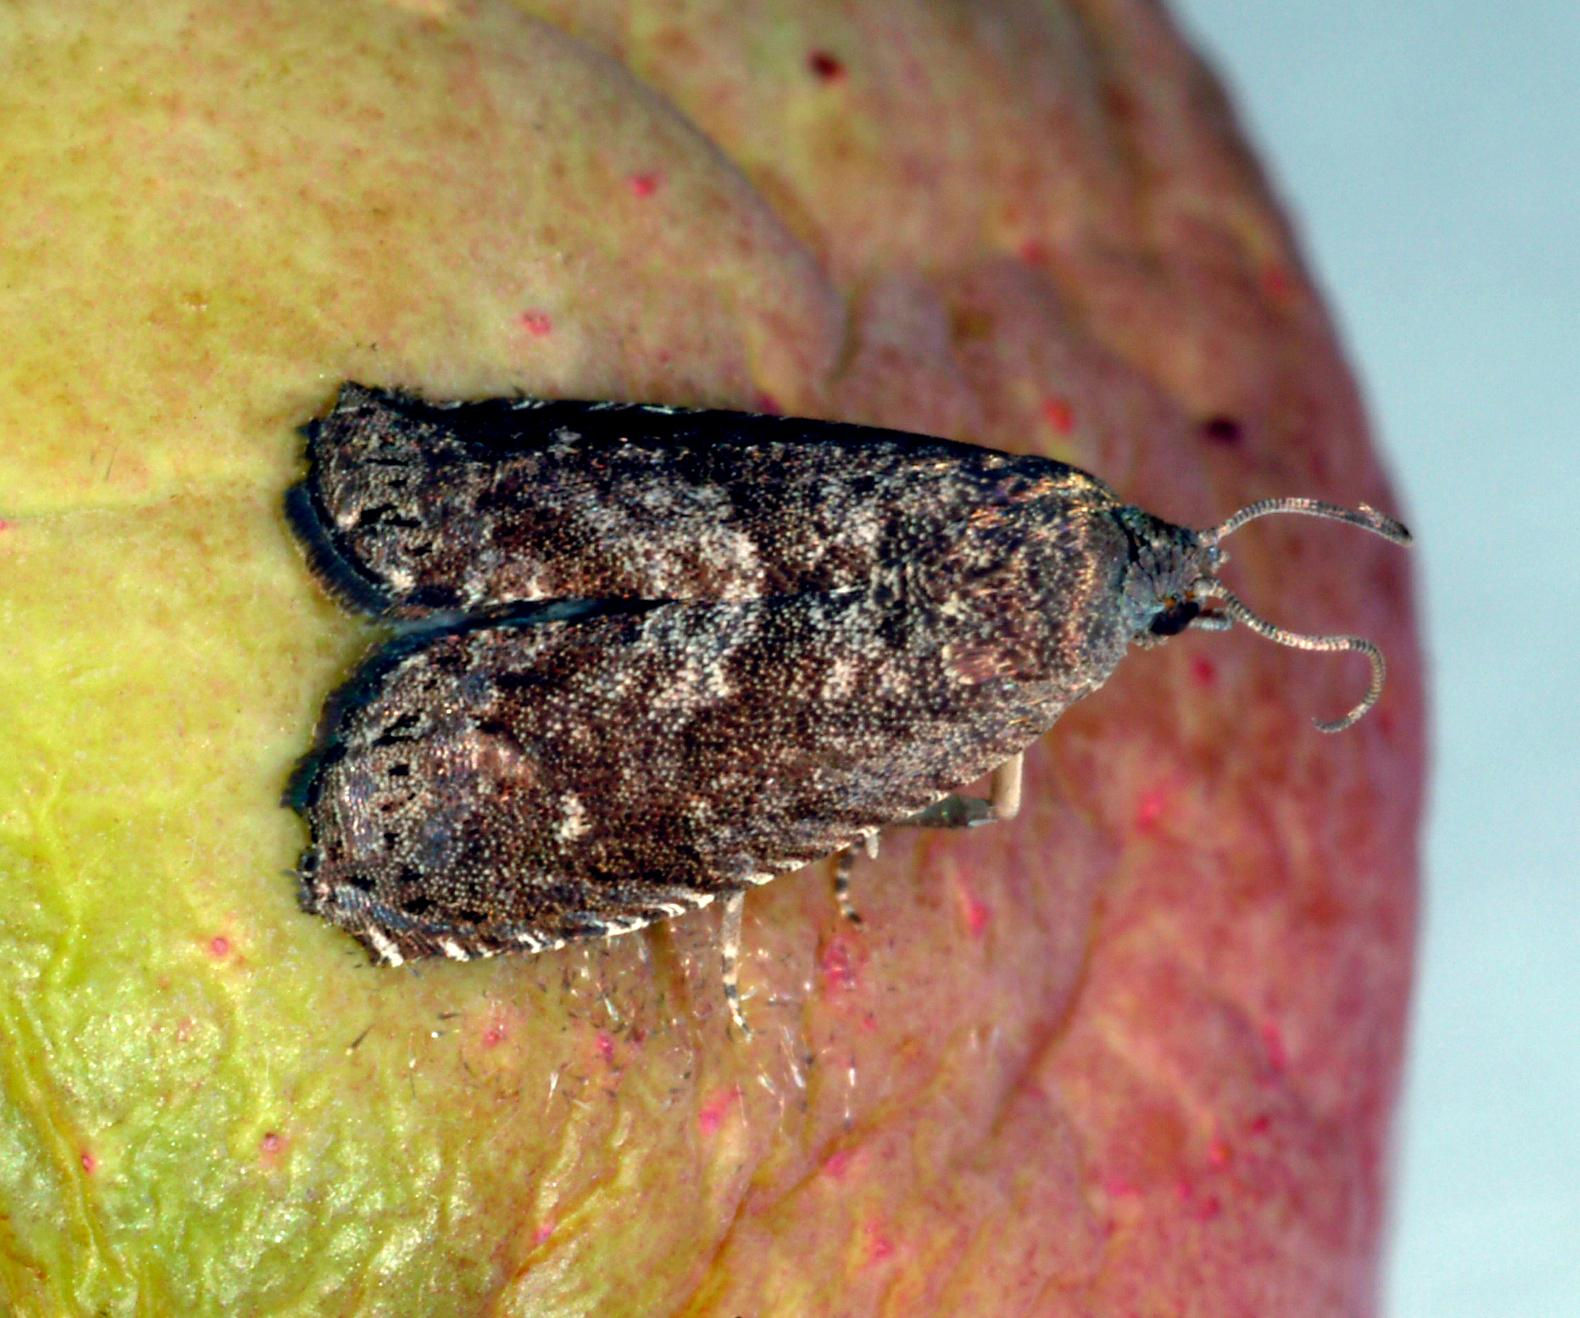 Adult Oriental fruit moth (Bessin, UKY)